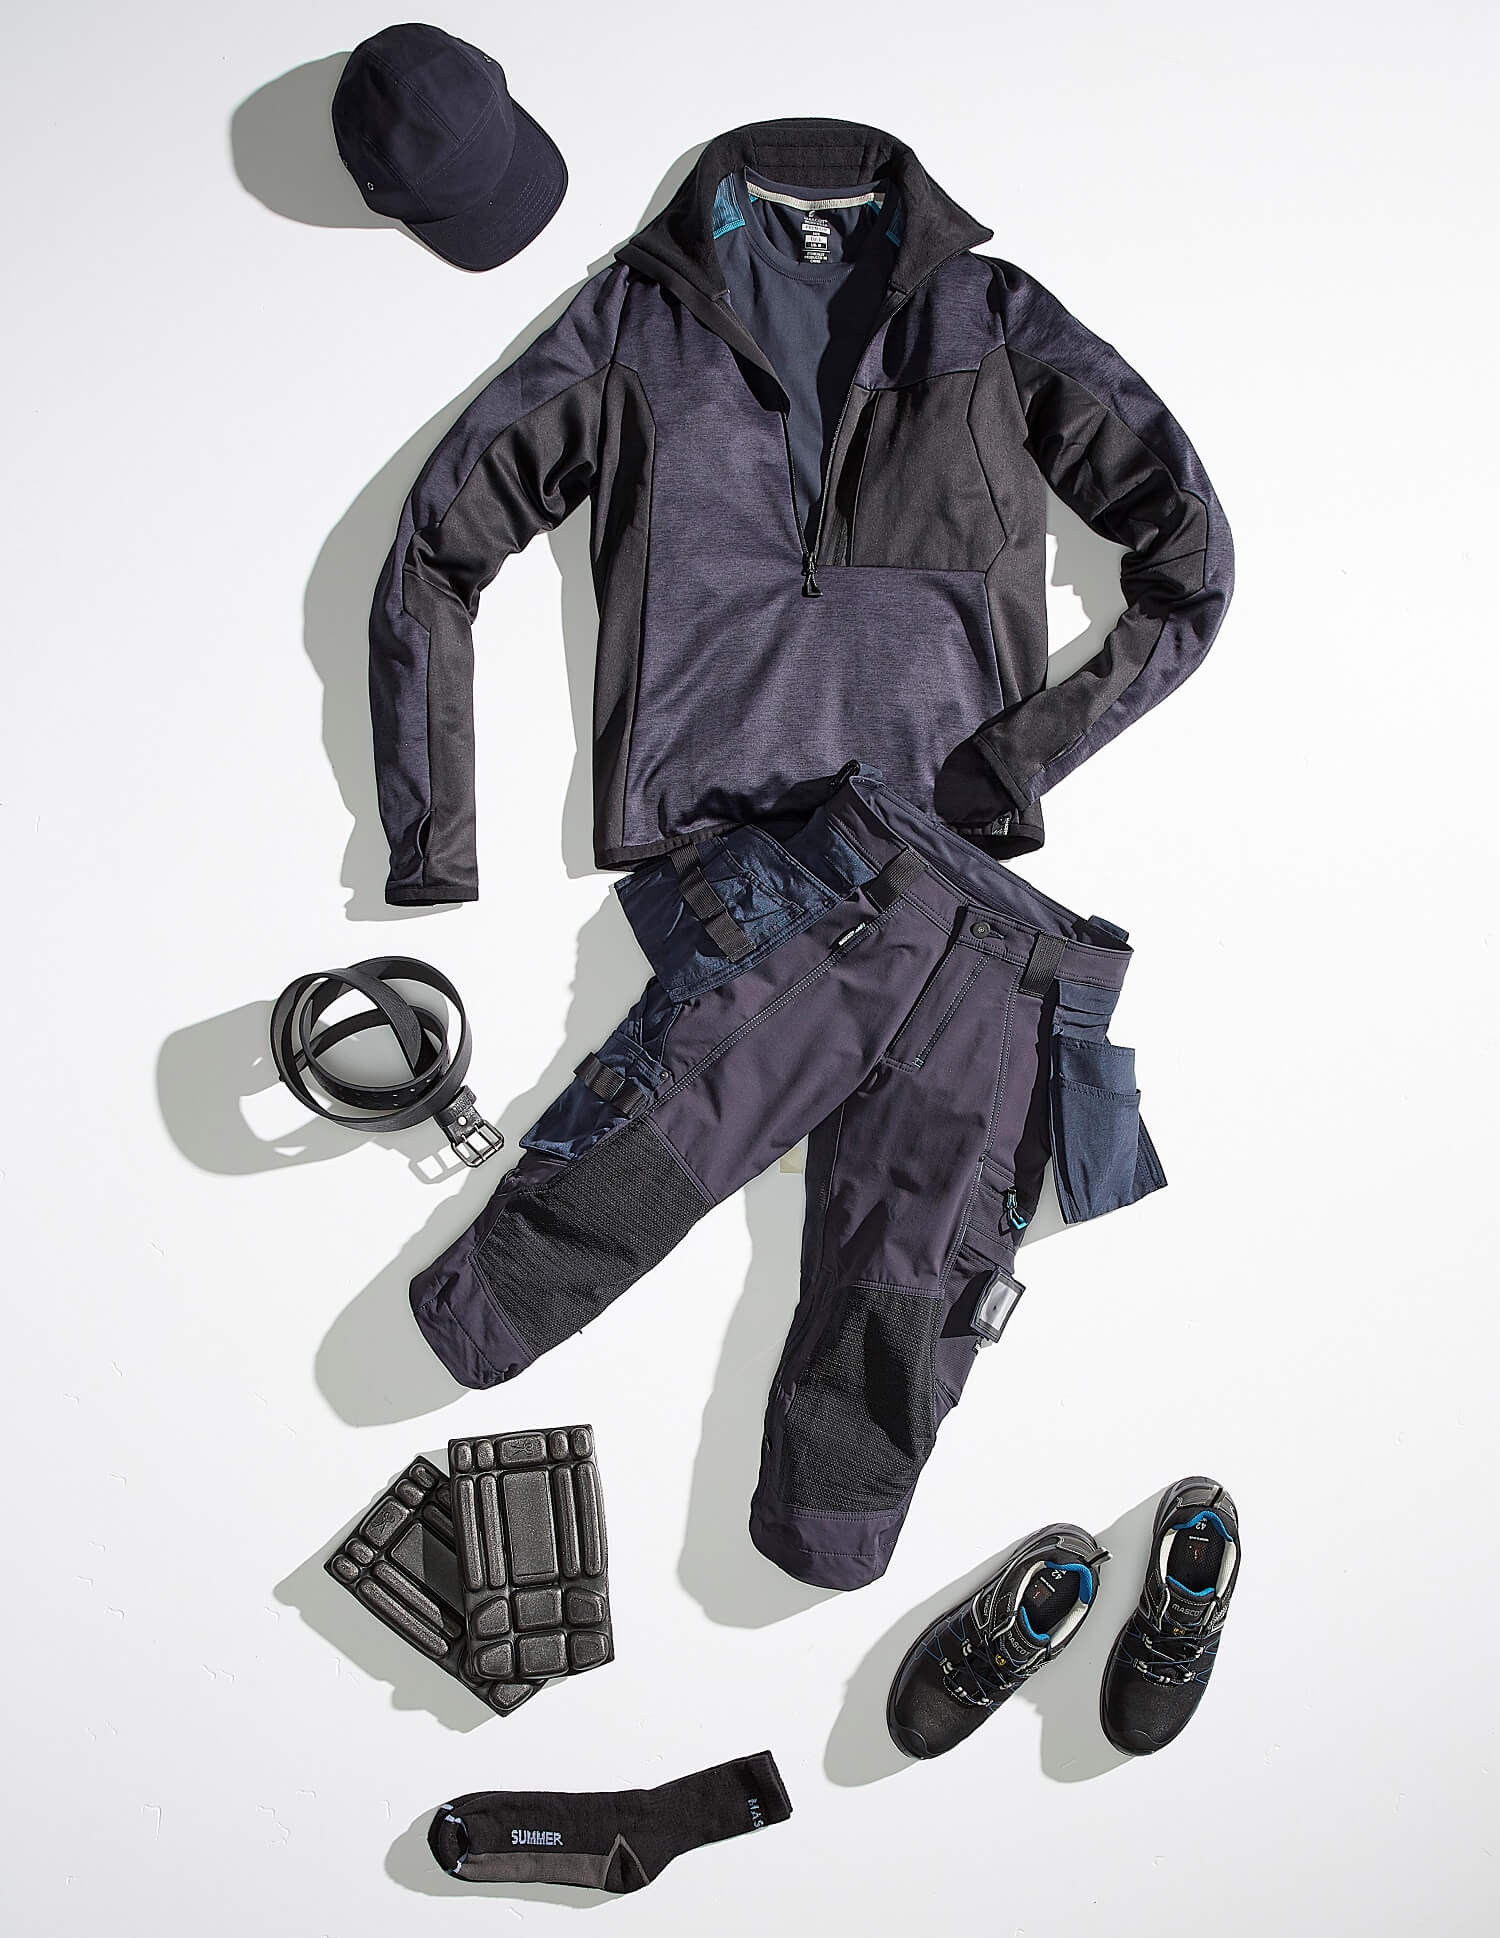 Navy - Work Jacket, ¾ length trousers, Safety Shoe & Accessories - Collage